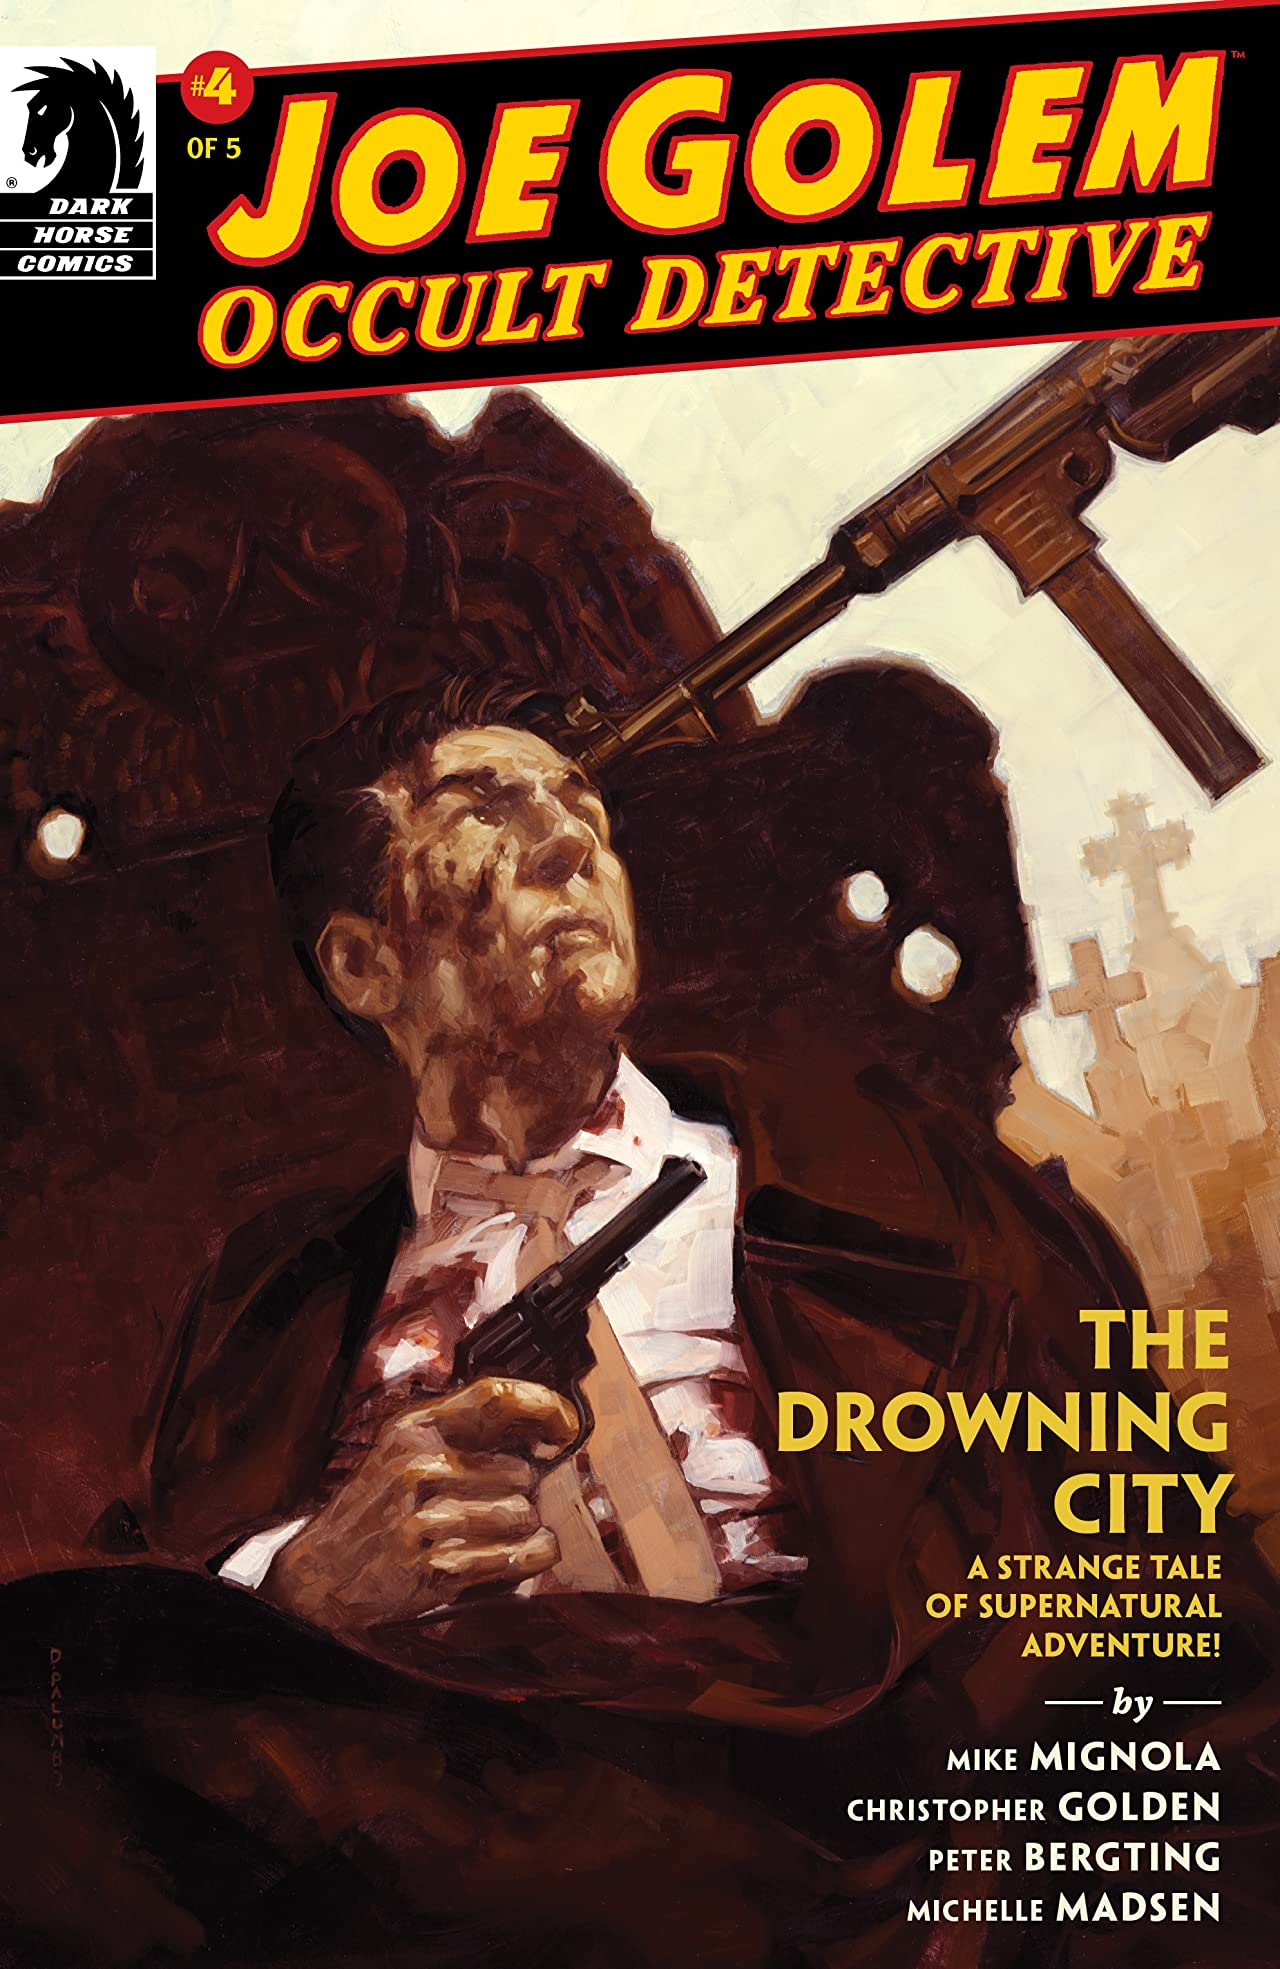 Joe Golem: Occult Detective--The Drowning City #4